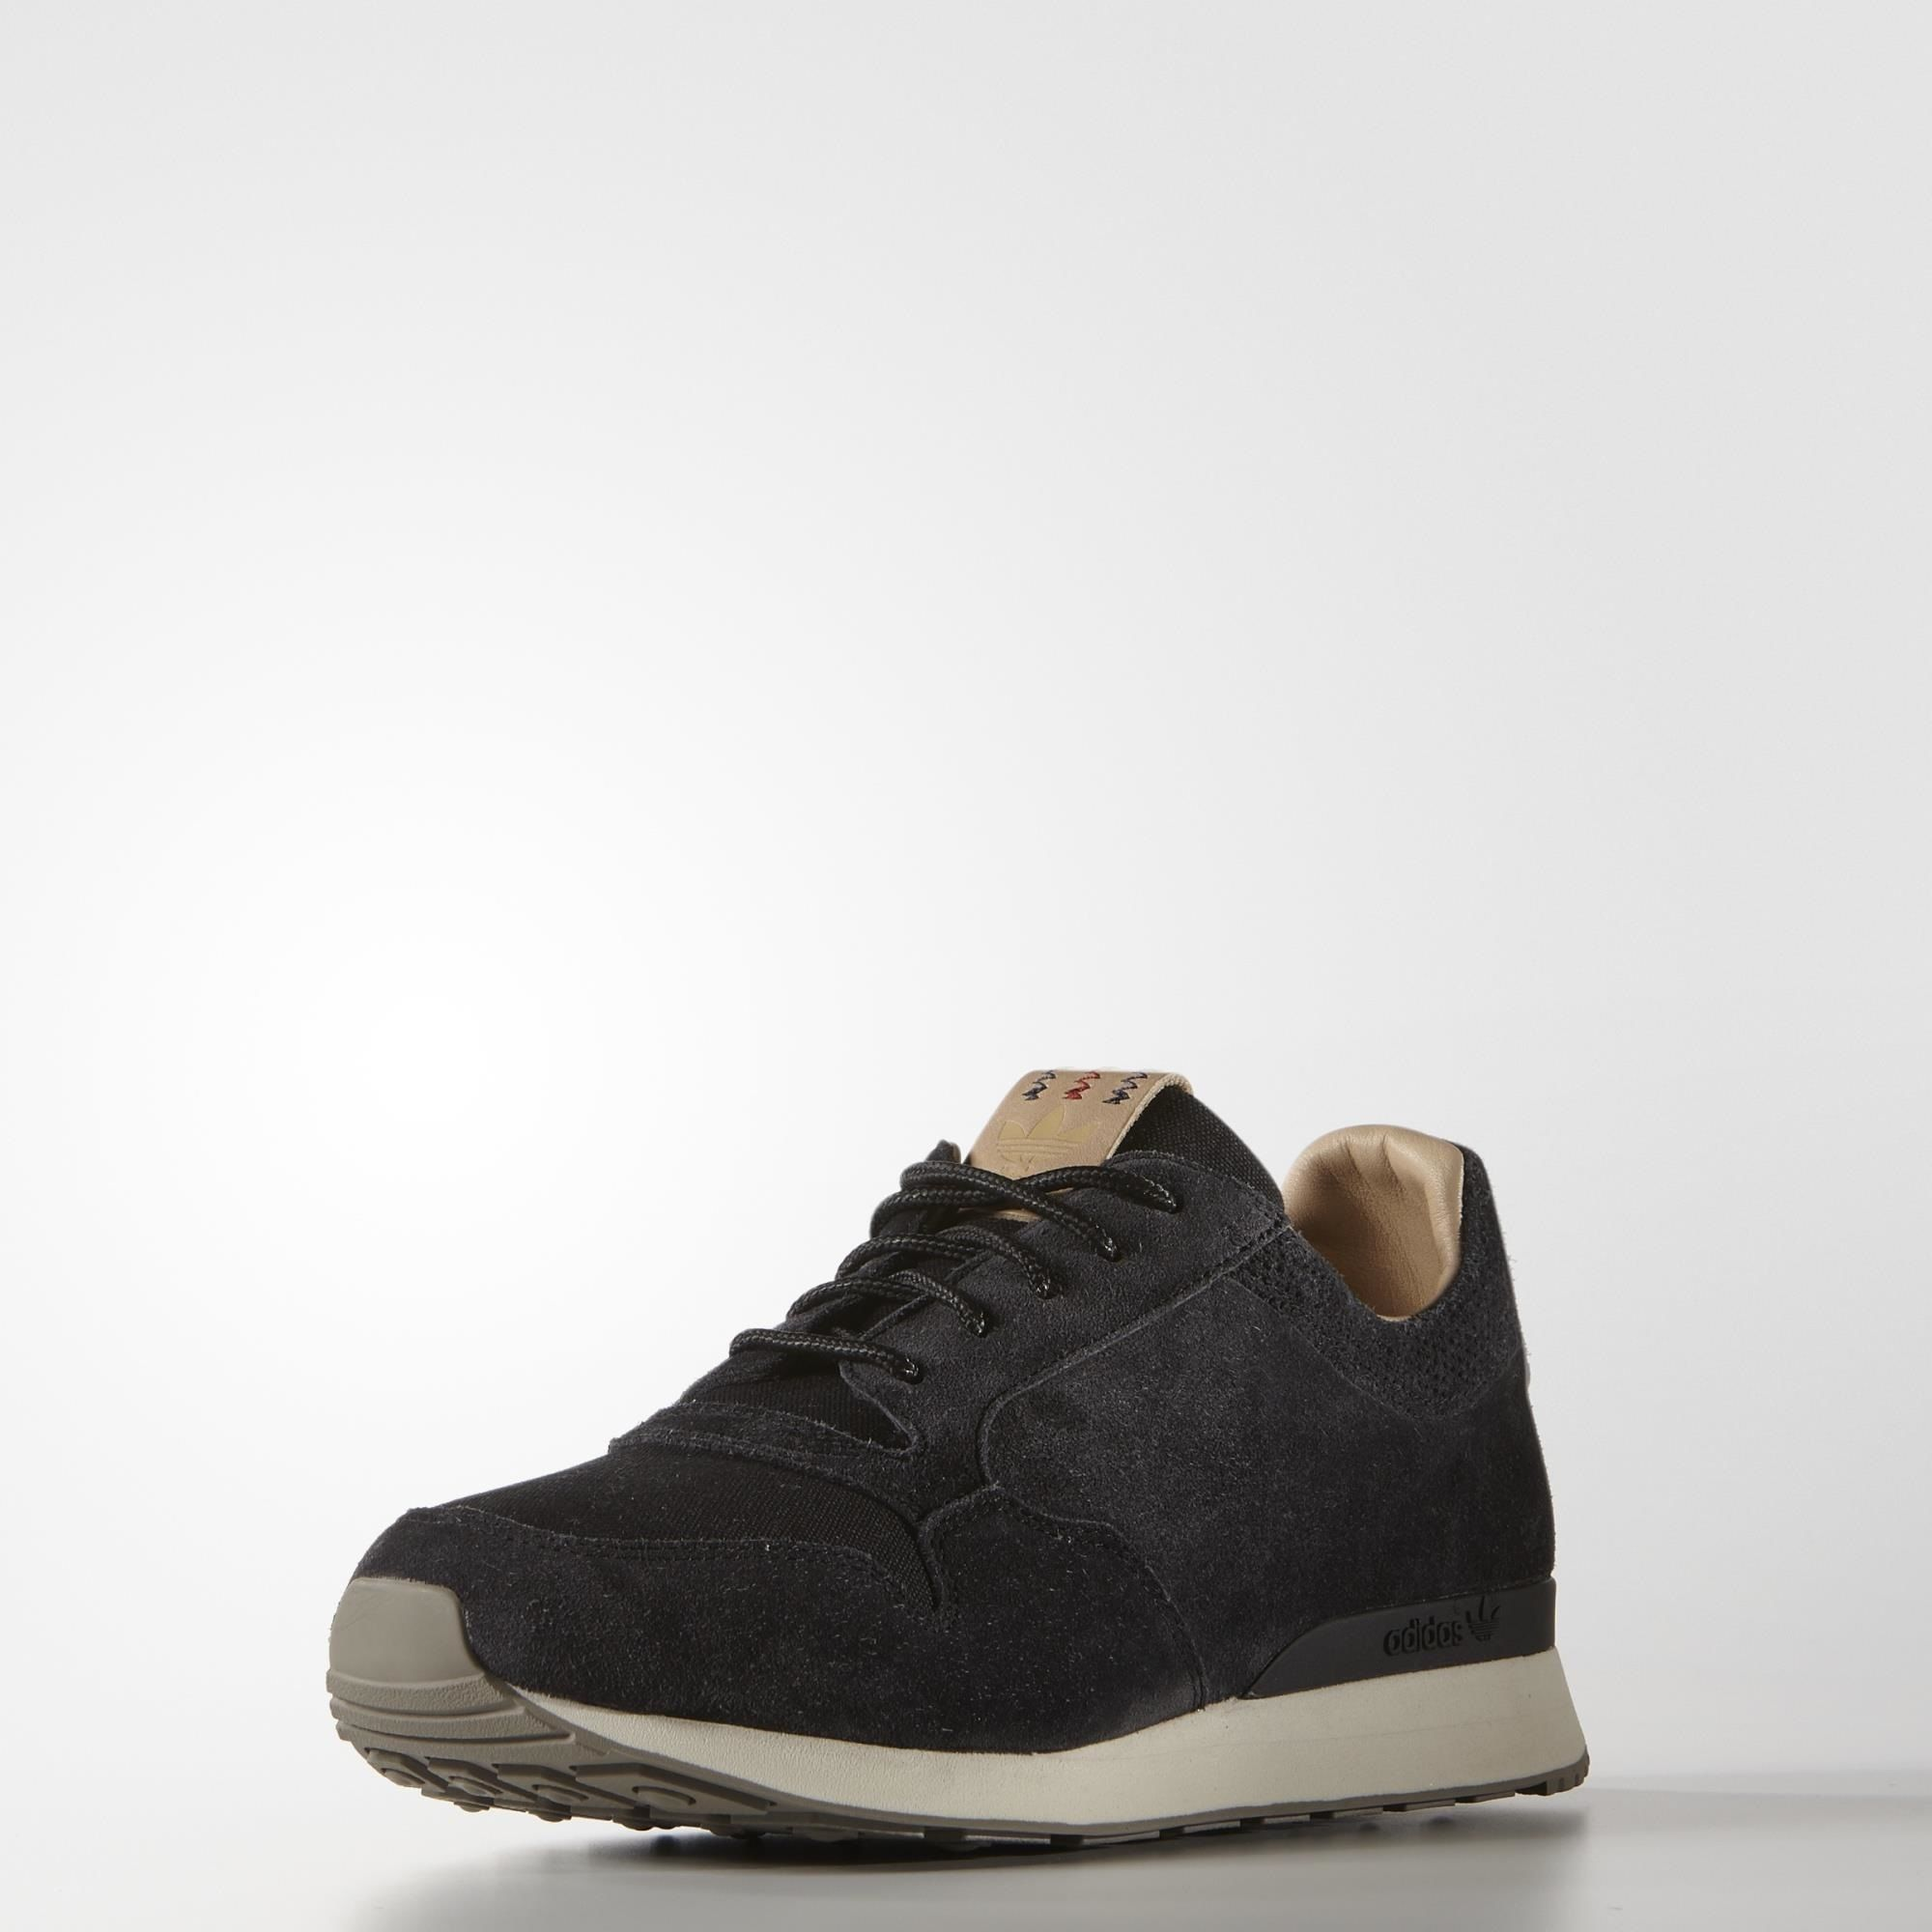 A sneaker with a sophisticated look, the ZX 500 Freizeit men's shoe gives  you refined